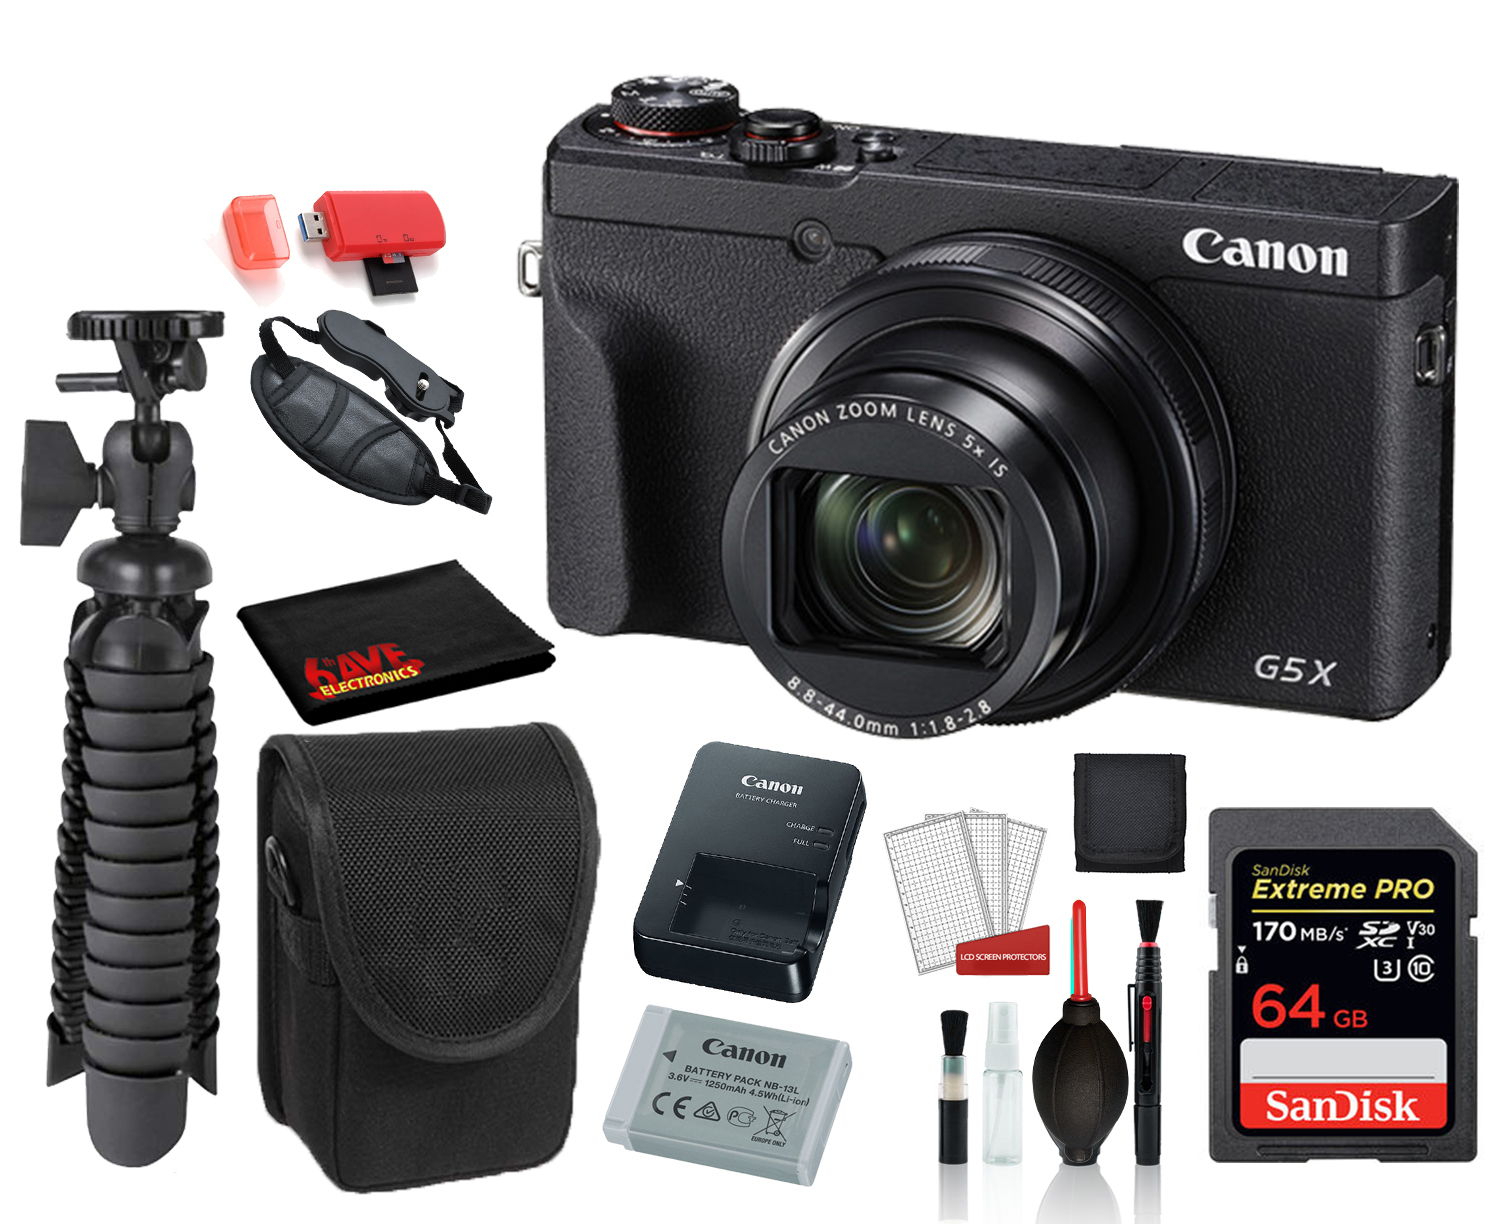 Canon PowerShot G5 X Mark II Digital Camera (3070C001) with Accessory Bundle package deal ' SanDisk 64gb Extreme Pro SD card + Camera Case + 12' Tripod + MORE